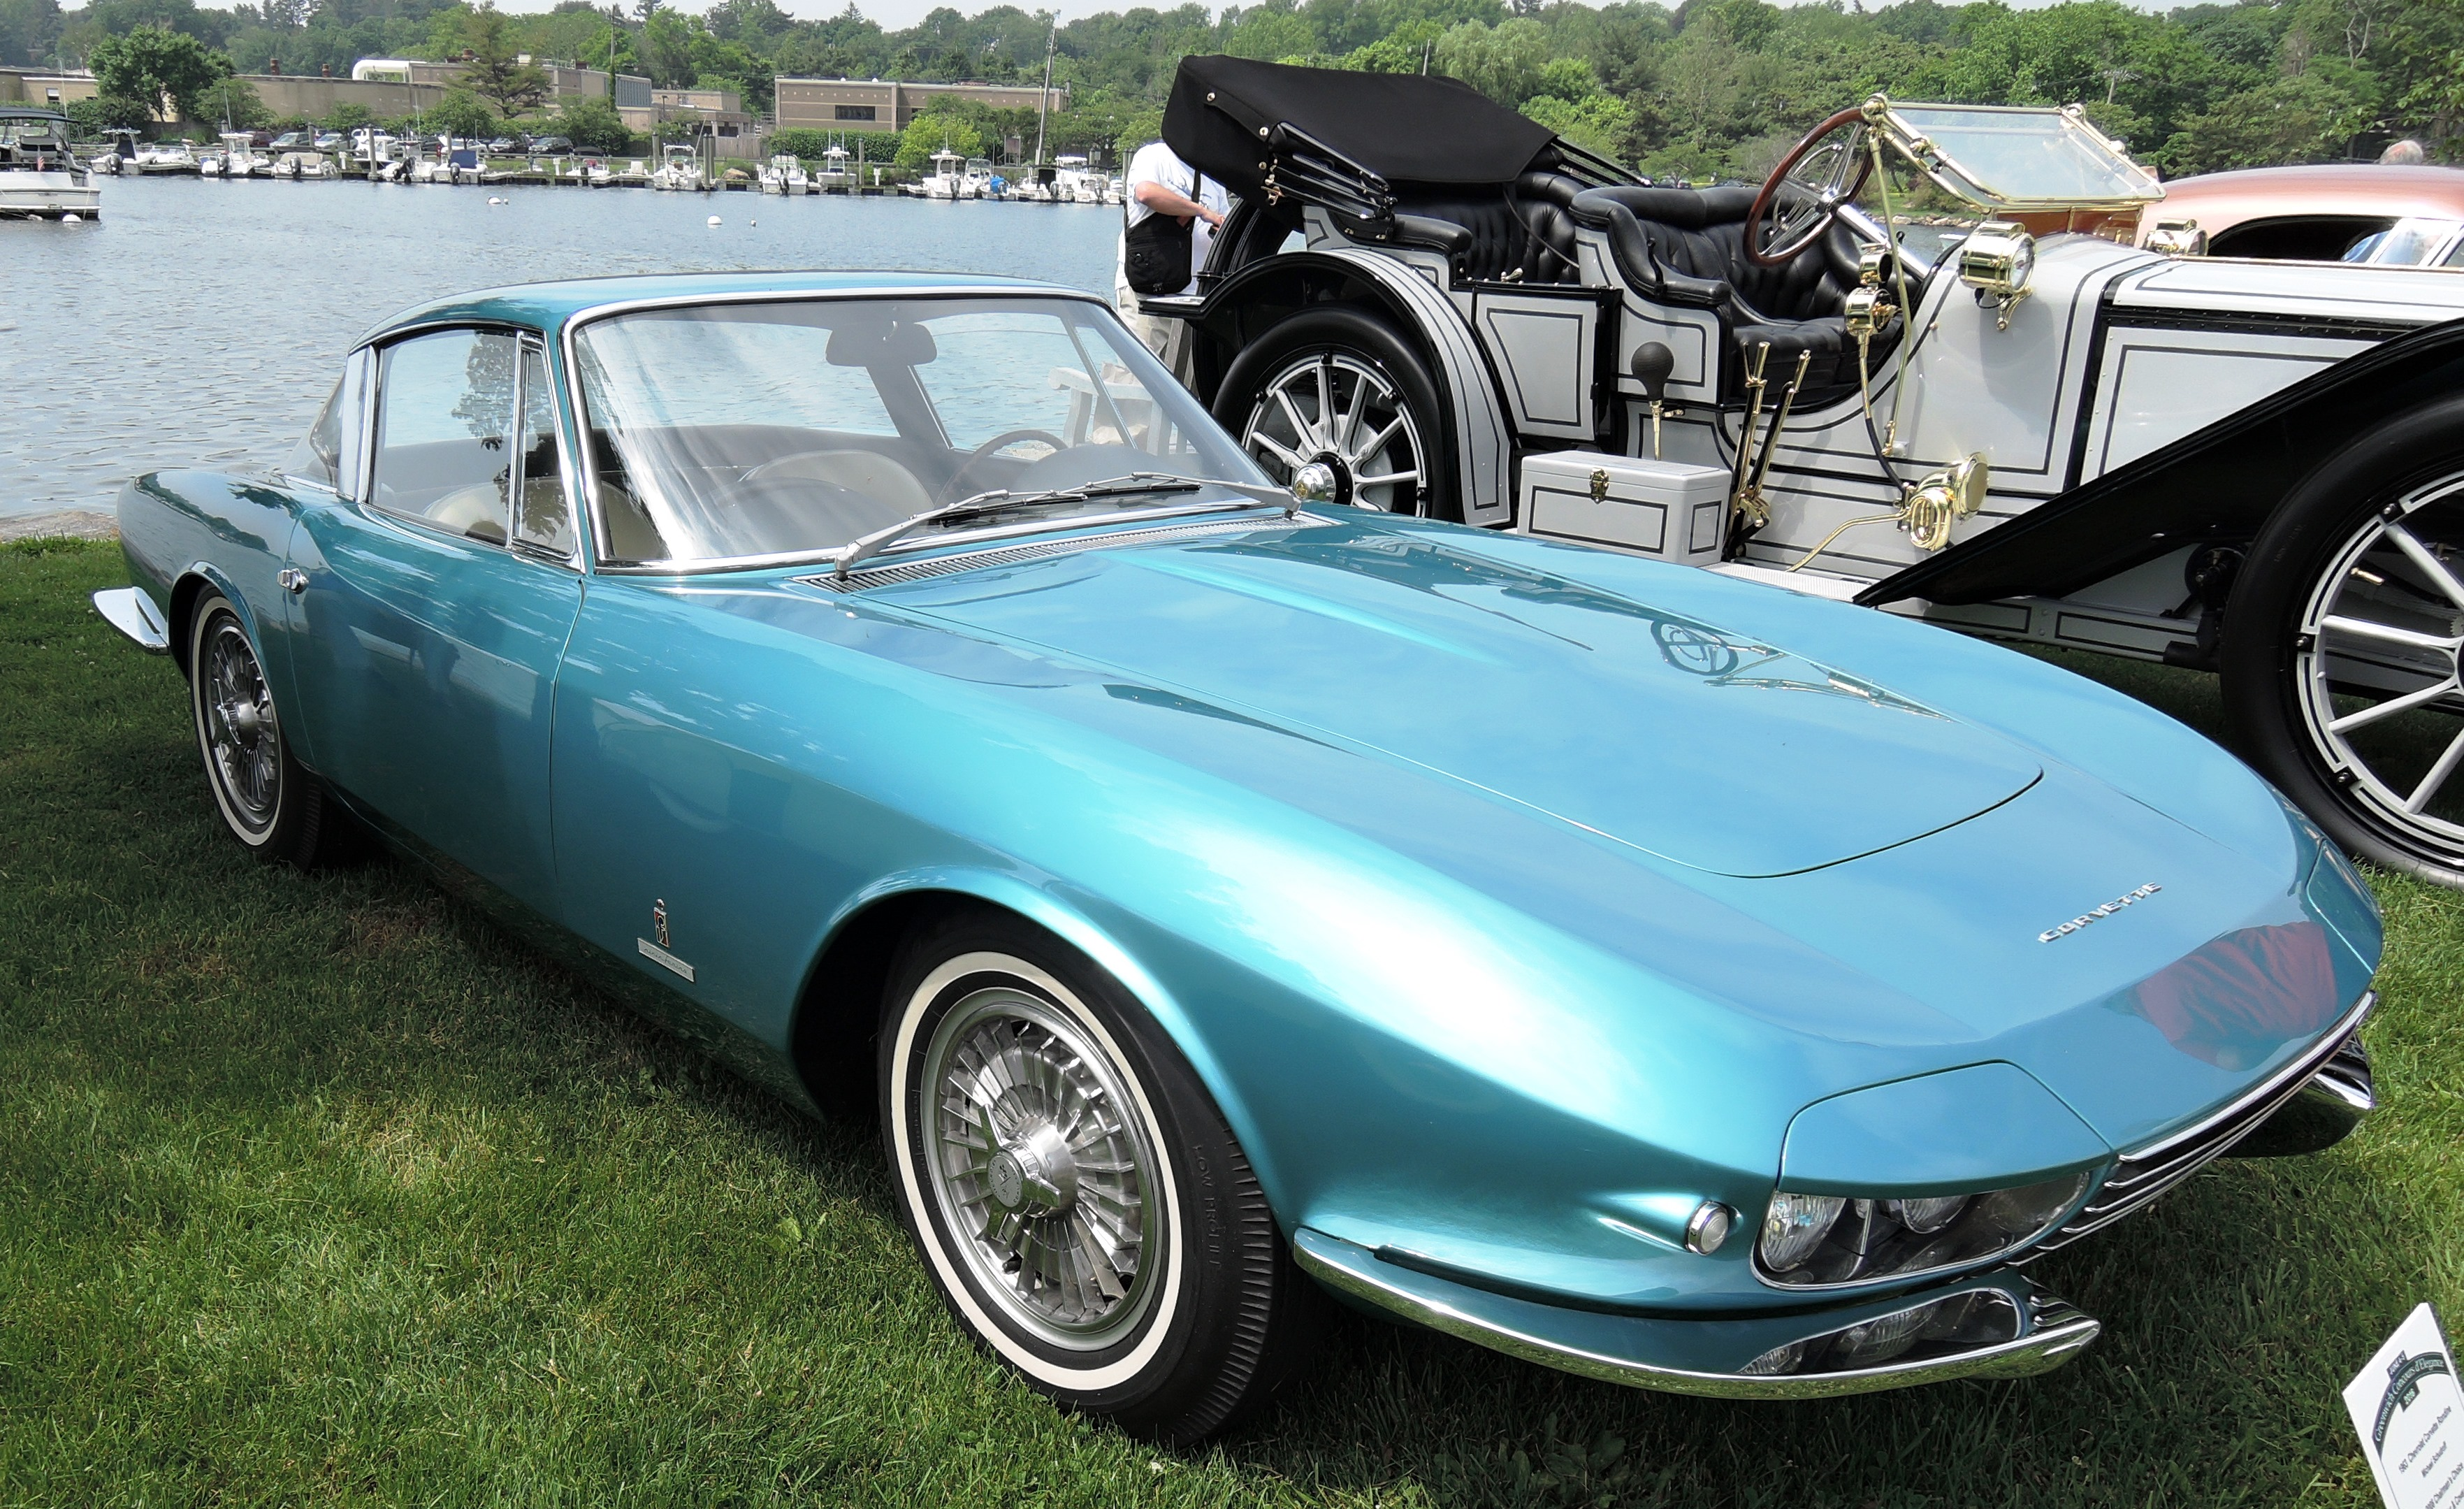 teal blue 1963 Chevrolet Corvette Rondine Coupe - greenwich concours